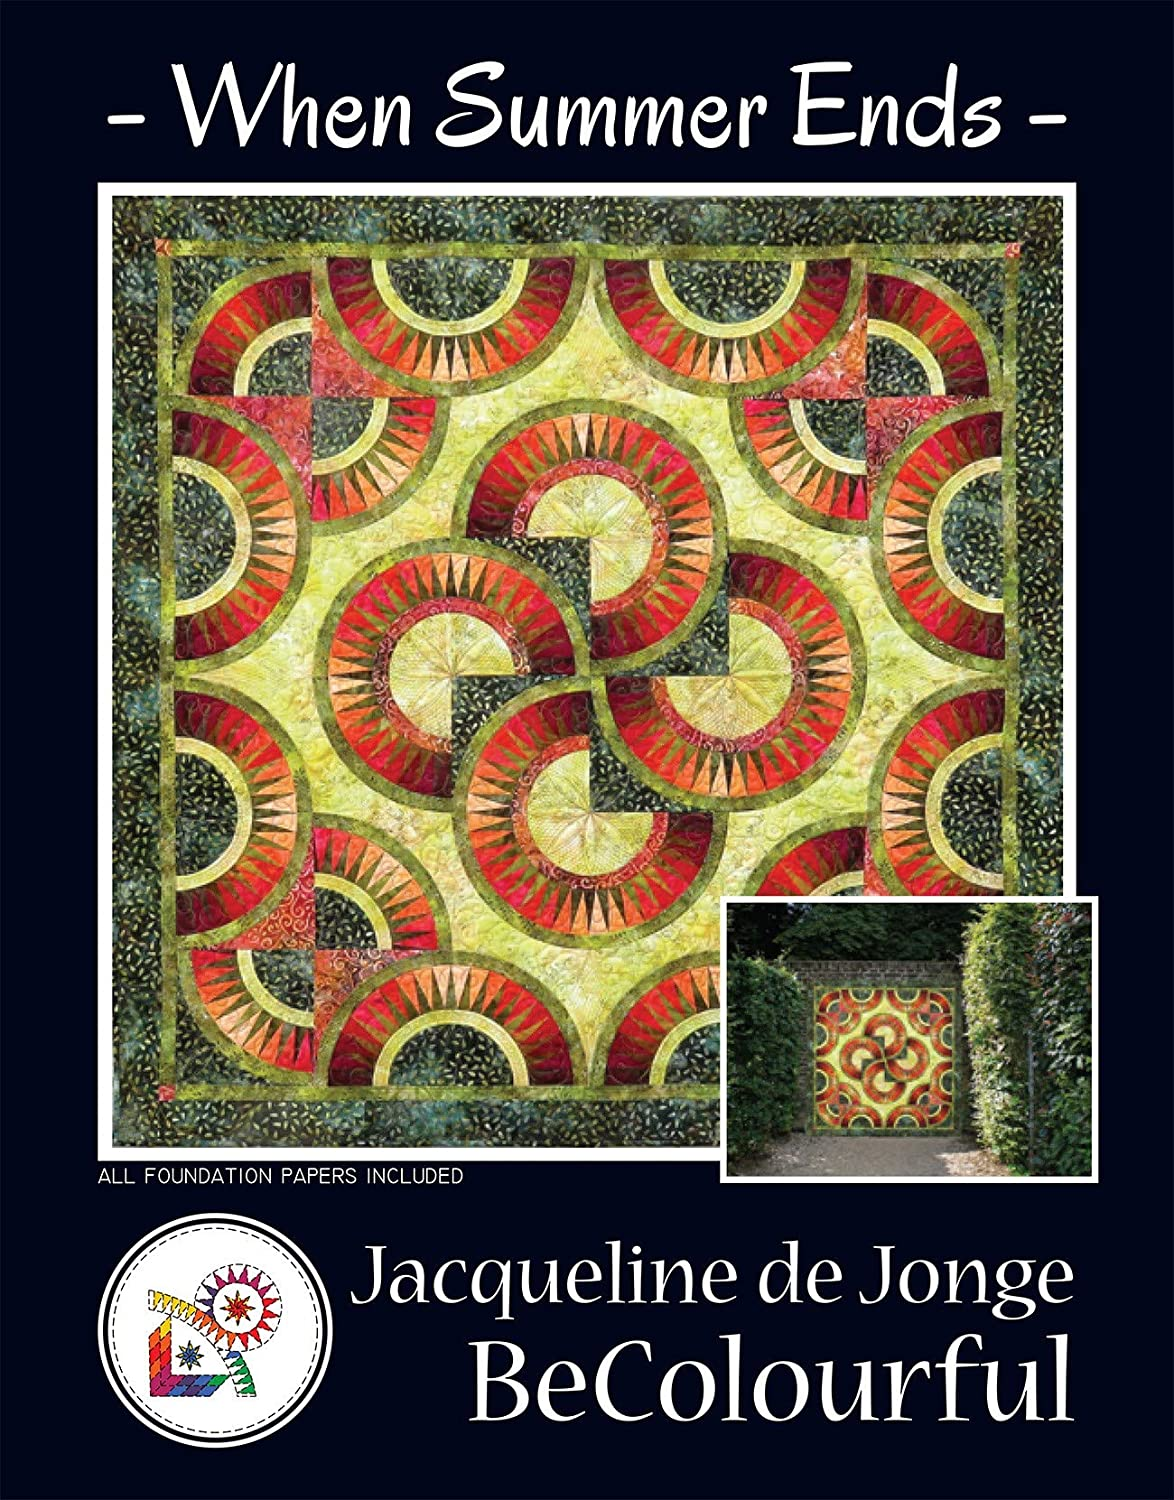 When Summer Ends Paper Pieced Quilt Jon Pattern Jacqueline de Max 85% OFF All stores are sold by